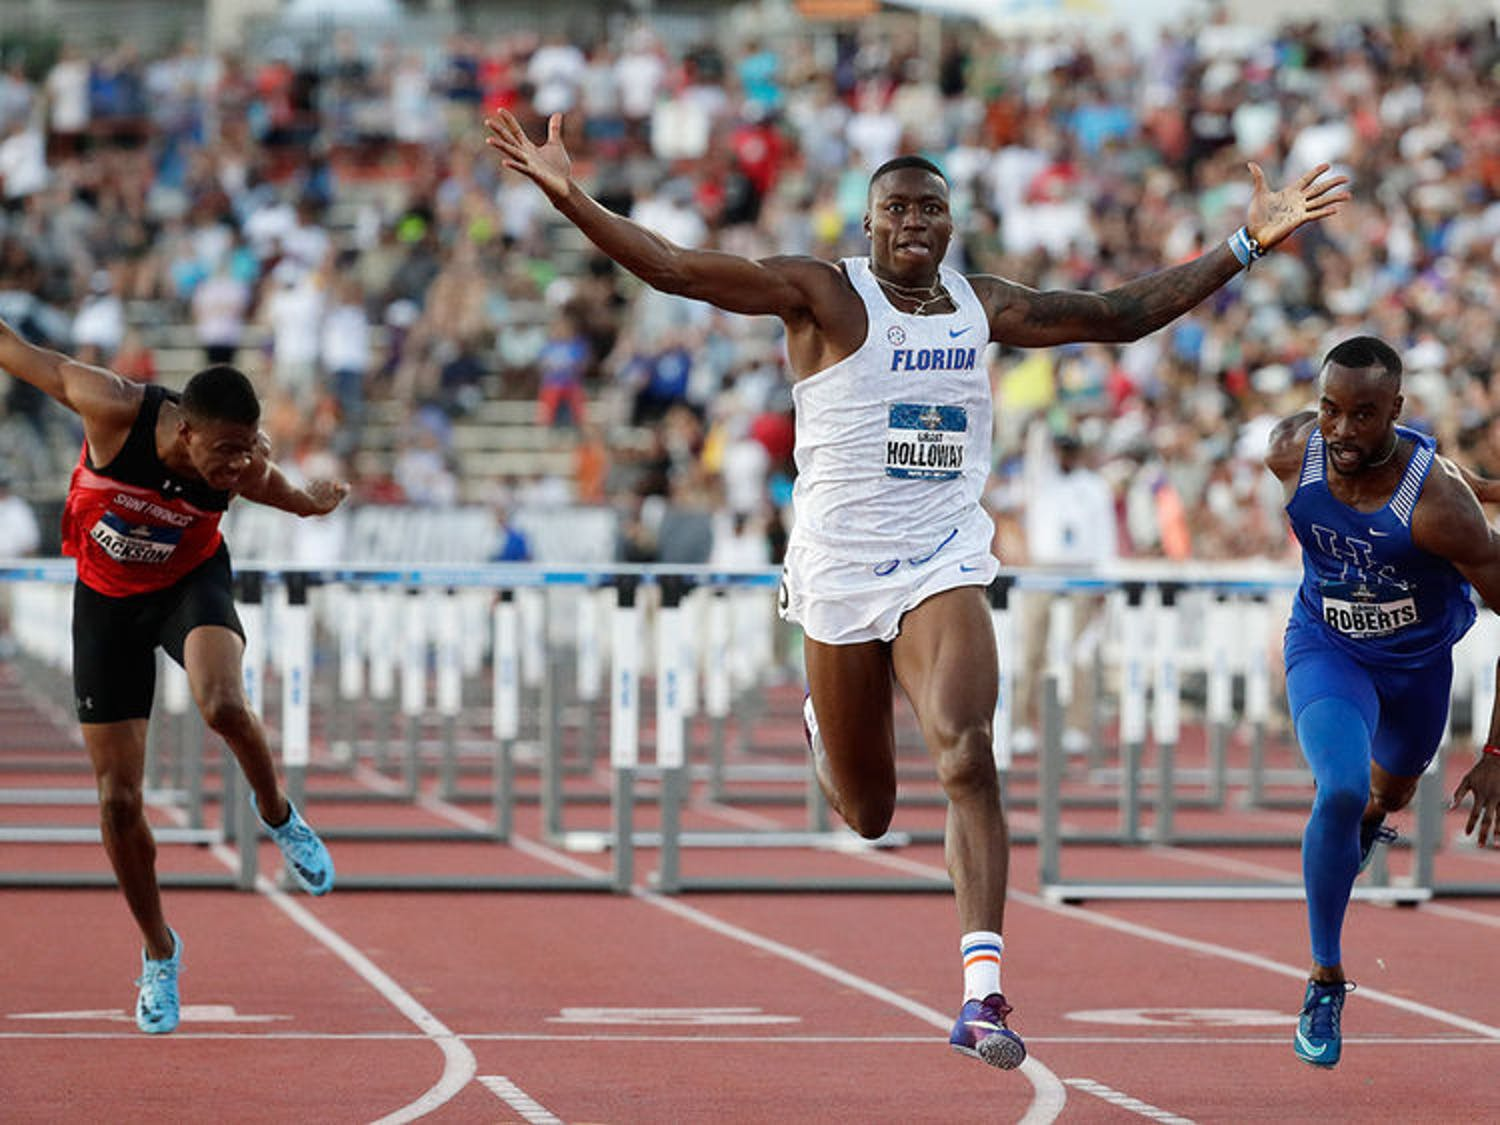 Grant Holloway, a former UF track star, was expected to compete in the Summer Olympics in Tokyo.